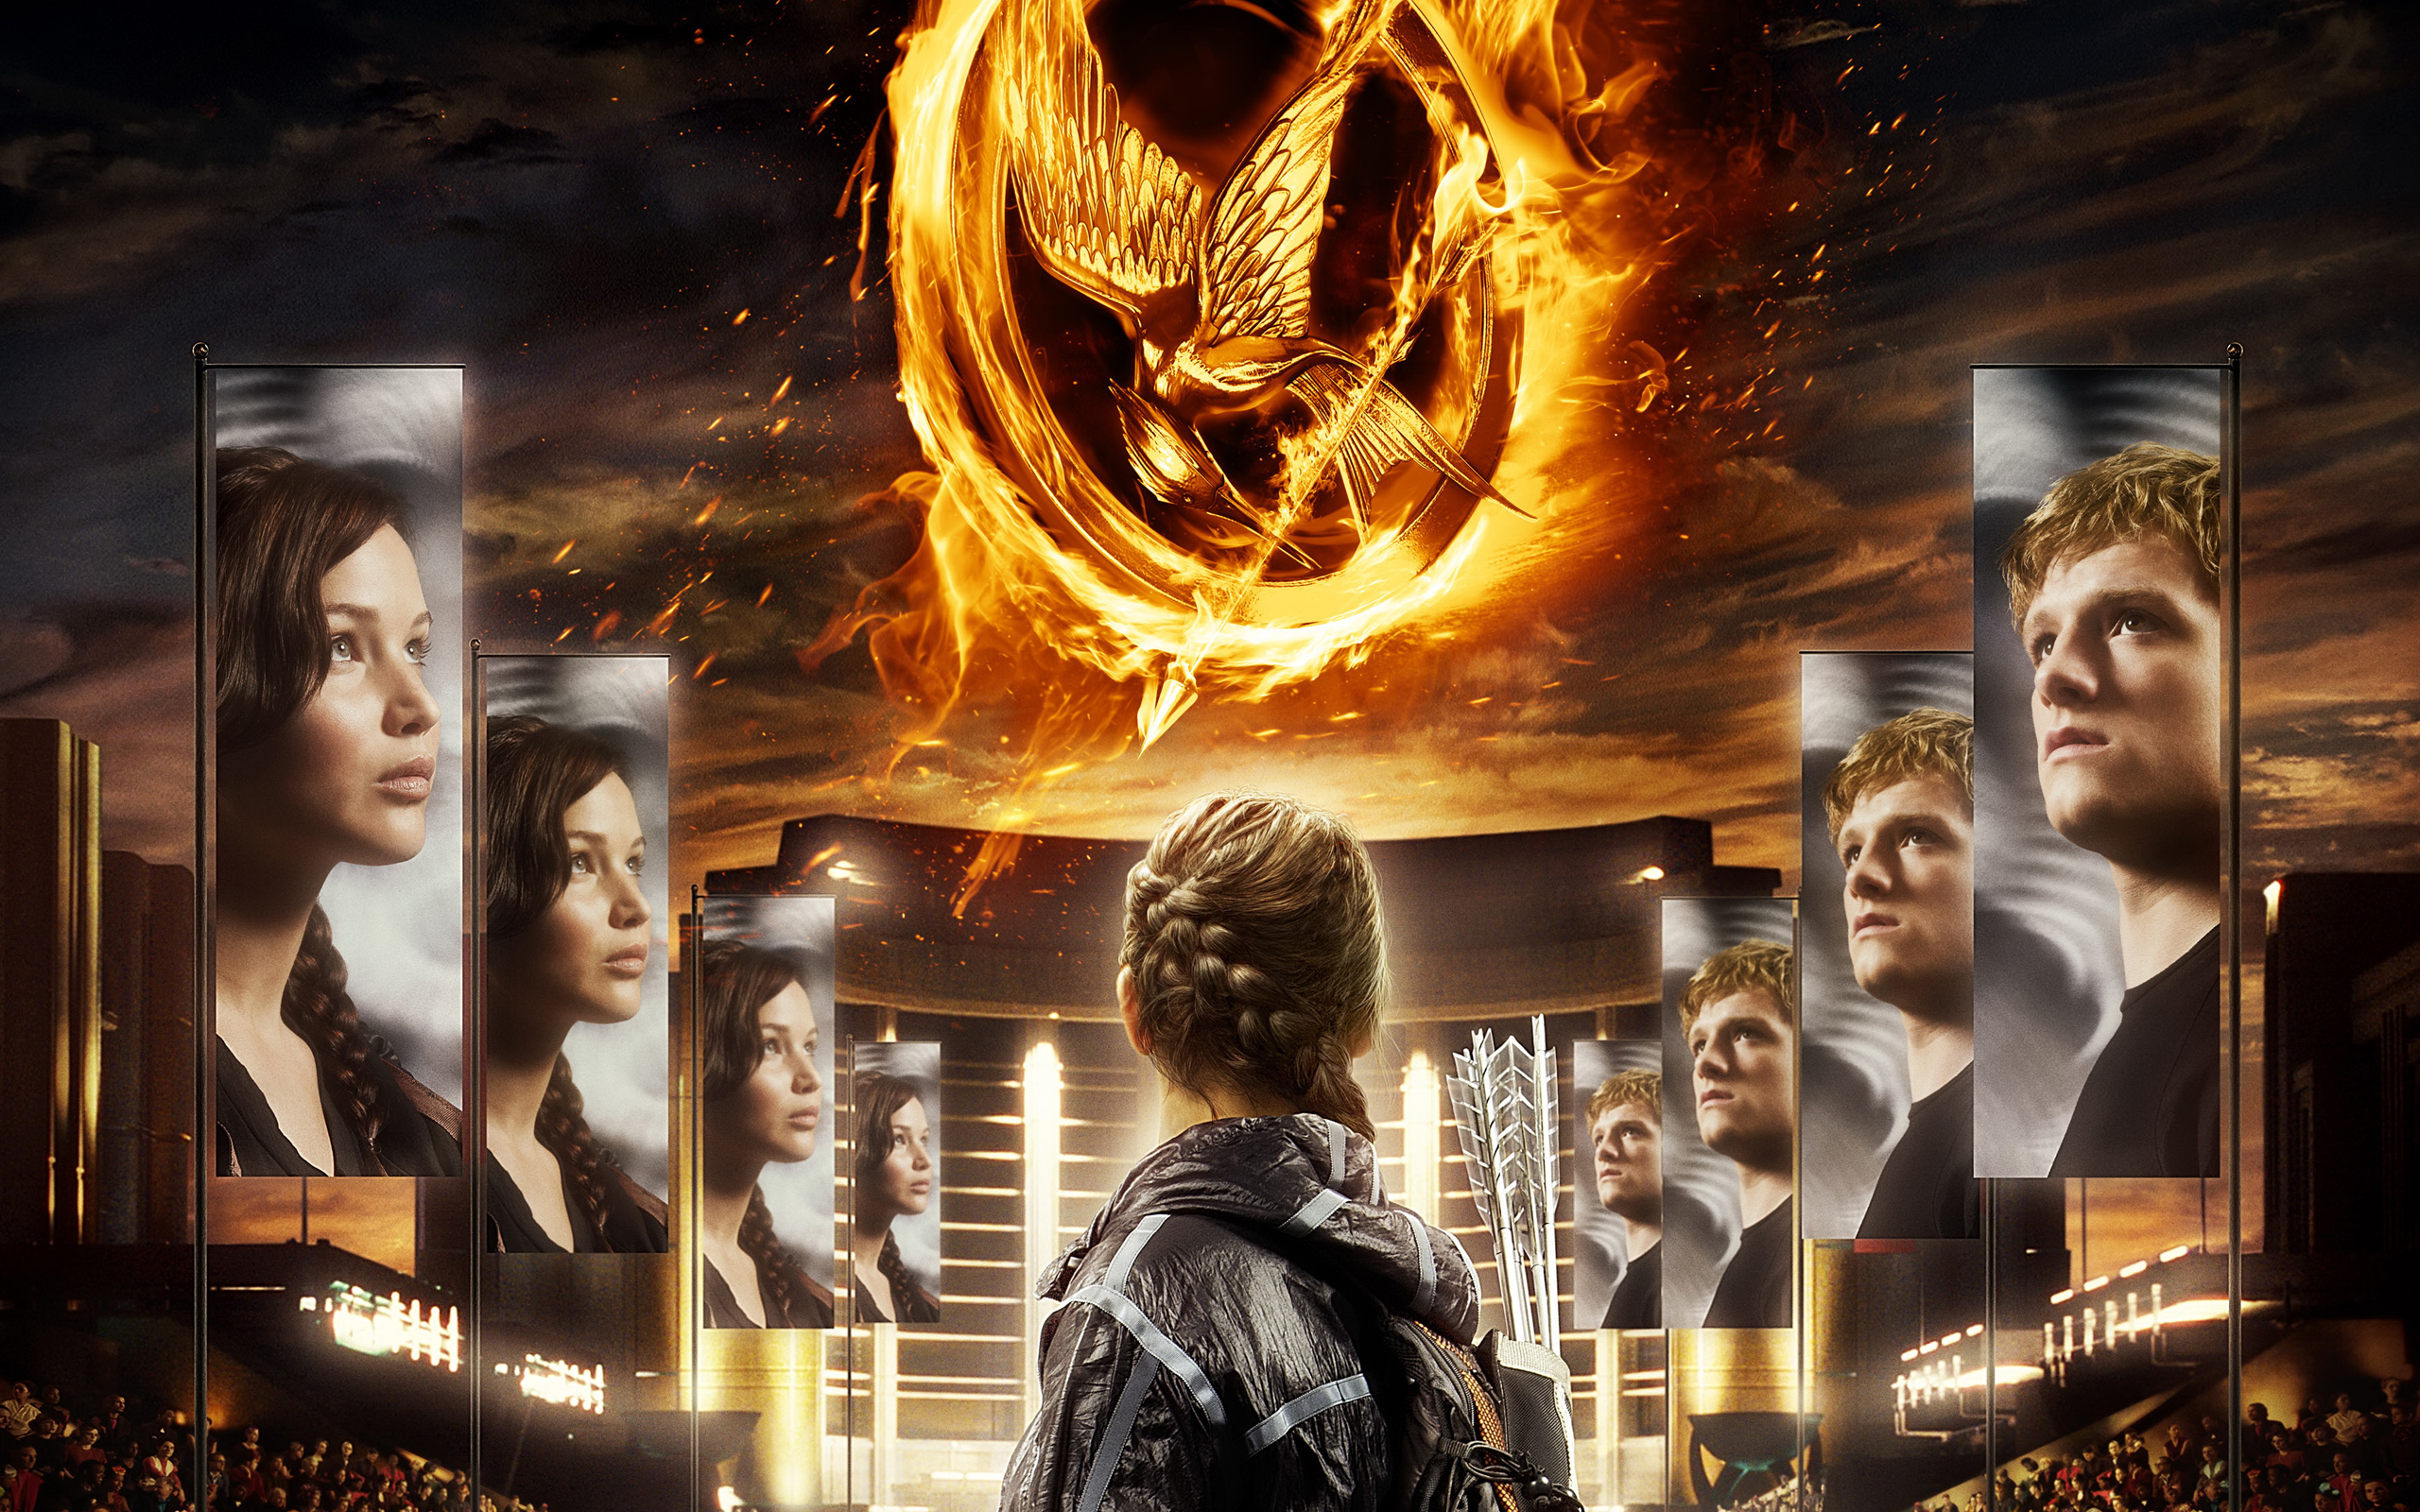 The Hunger Games wallpaper 1